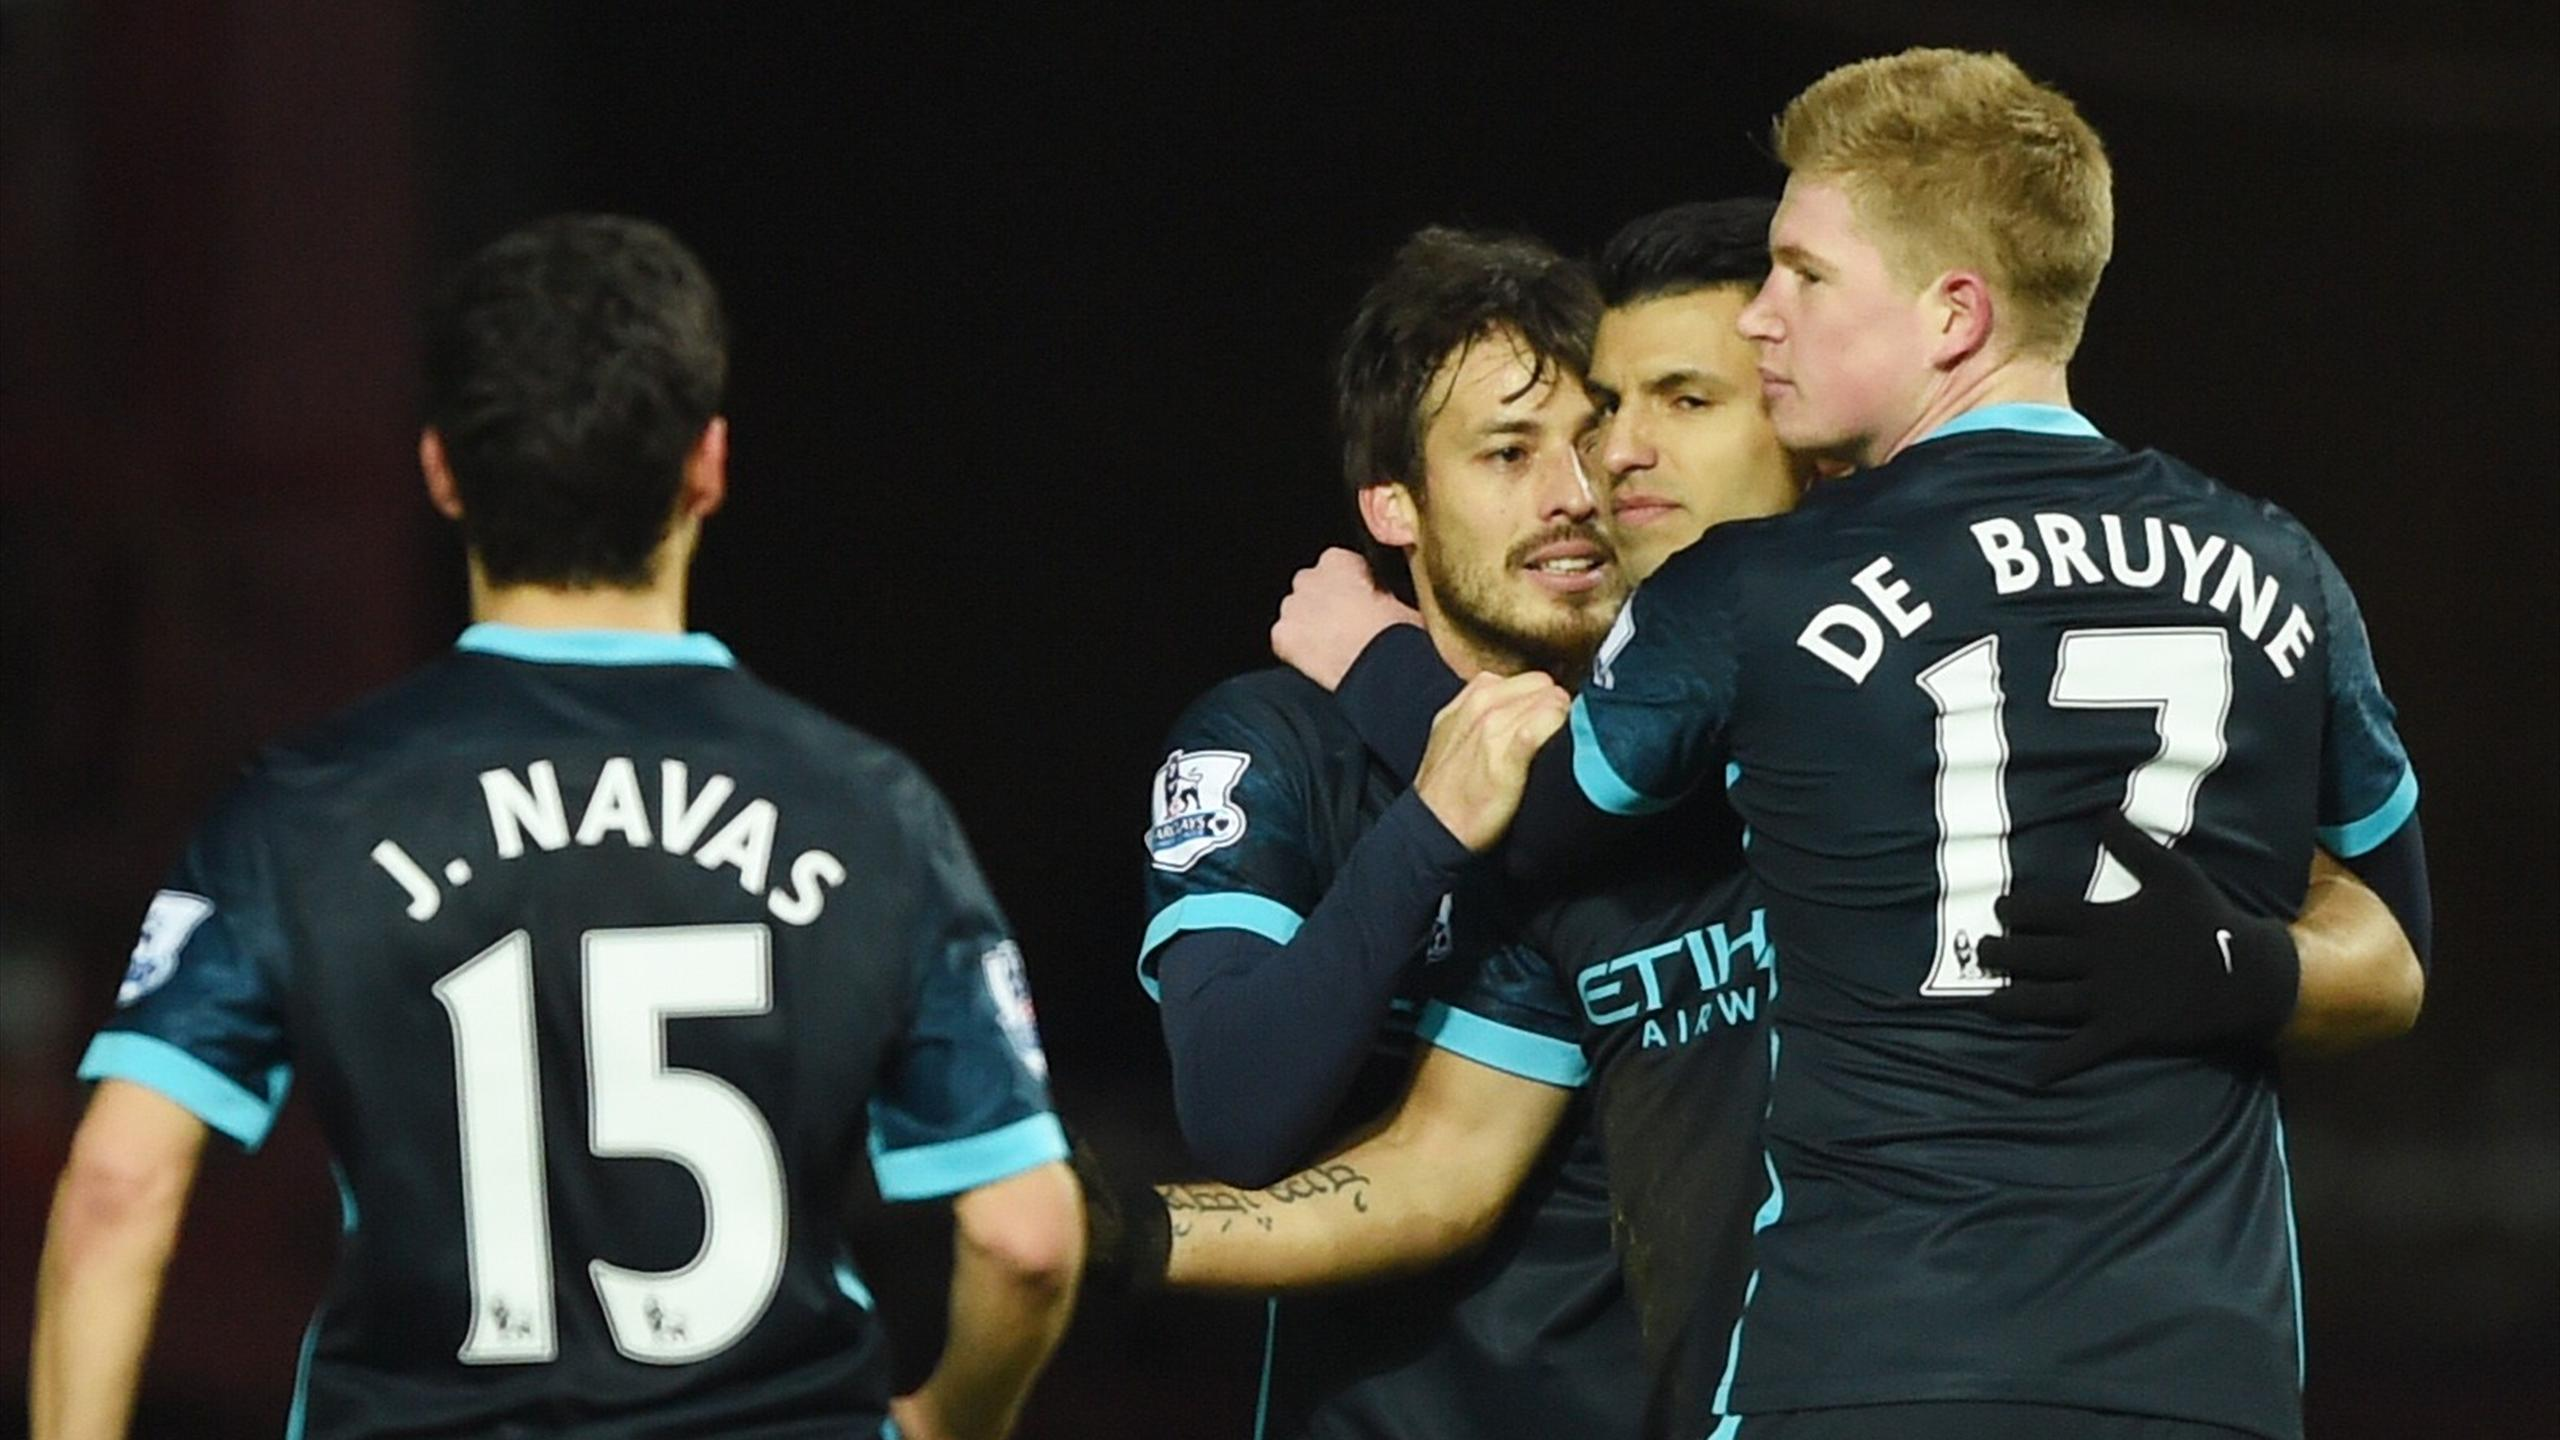 Manchester City's Sergio Aguero celebrates scoring their first goal with Kevin de Bruyne, David Silva and Jesus Navas